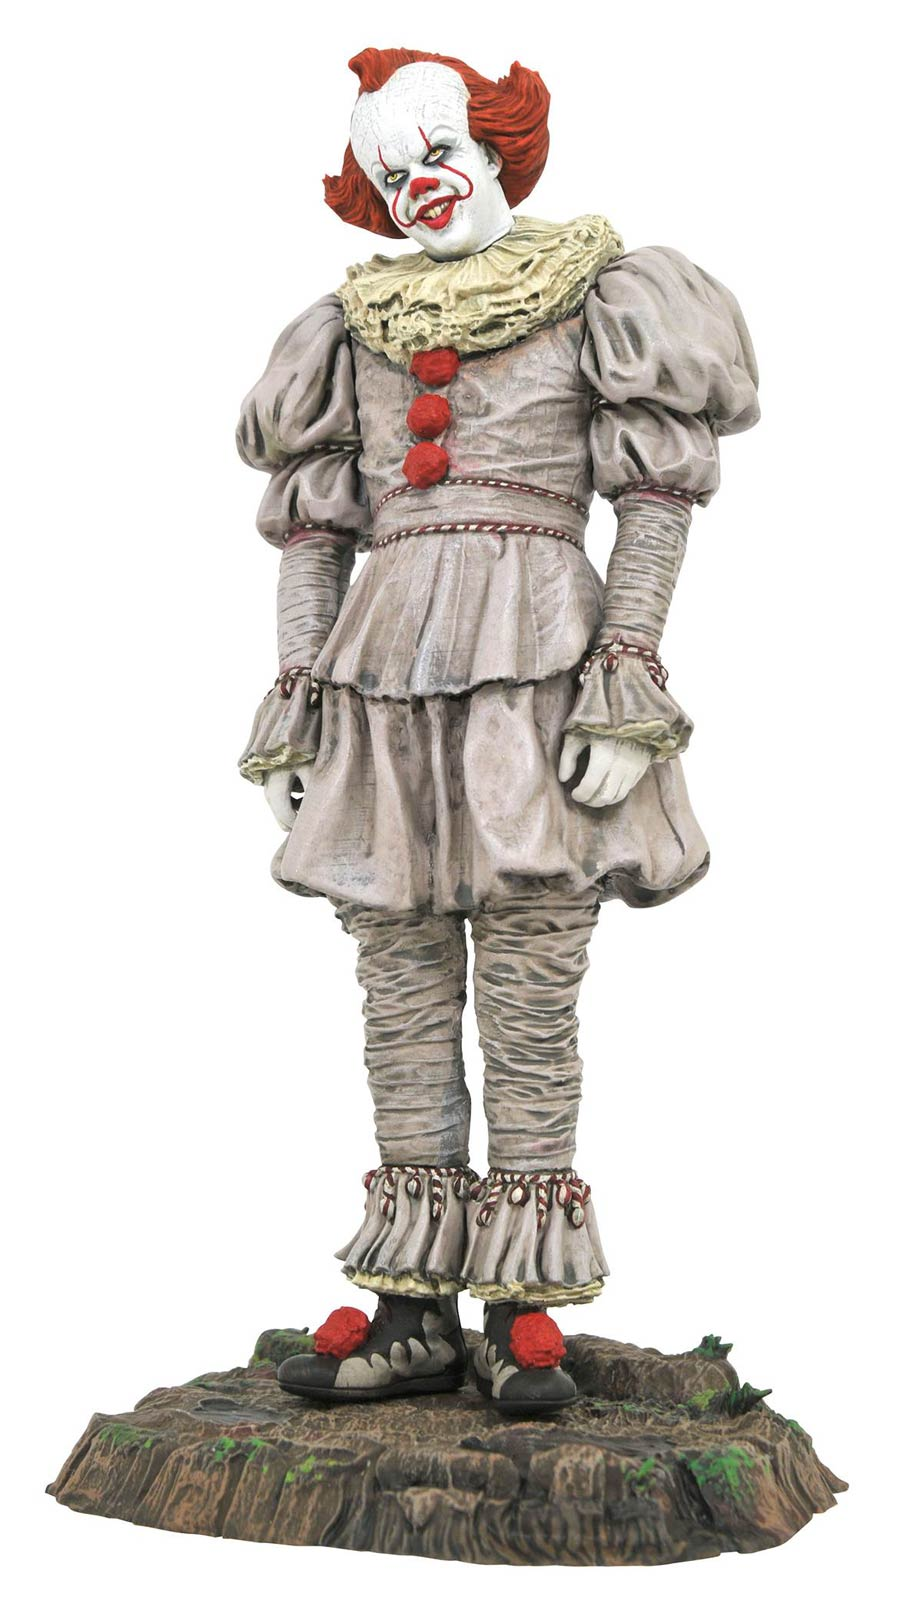 It Chapter 2 Gallery Pennywise Swamp PVC Statue